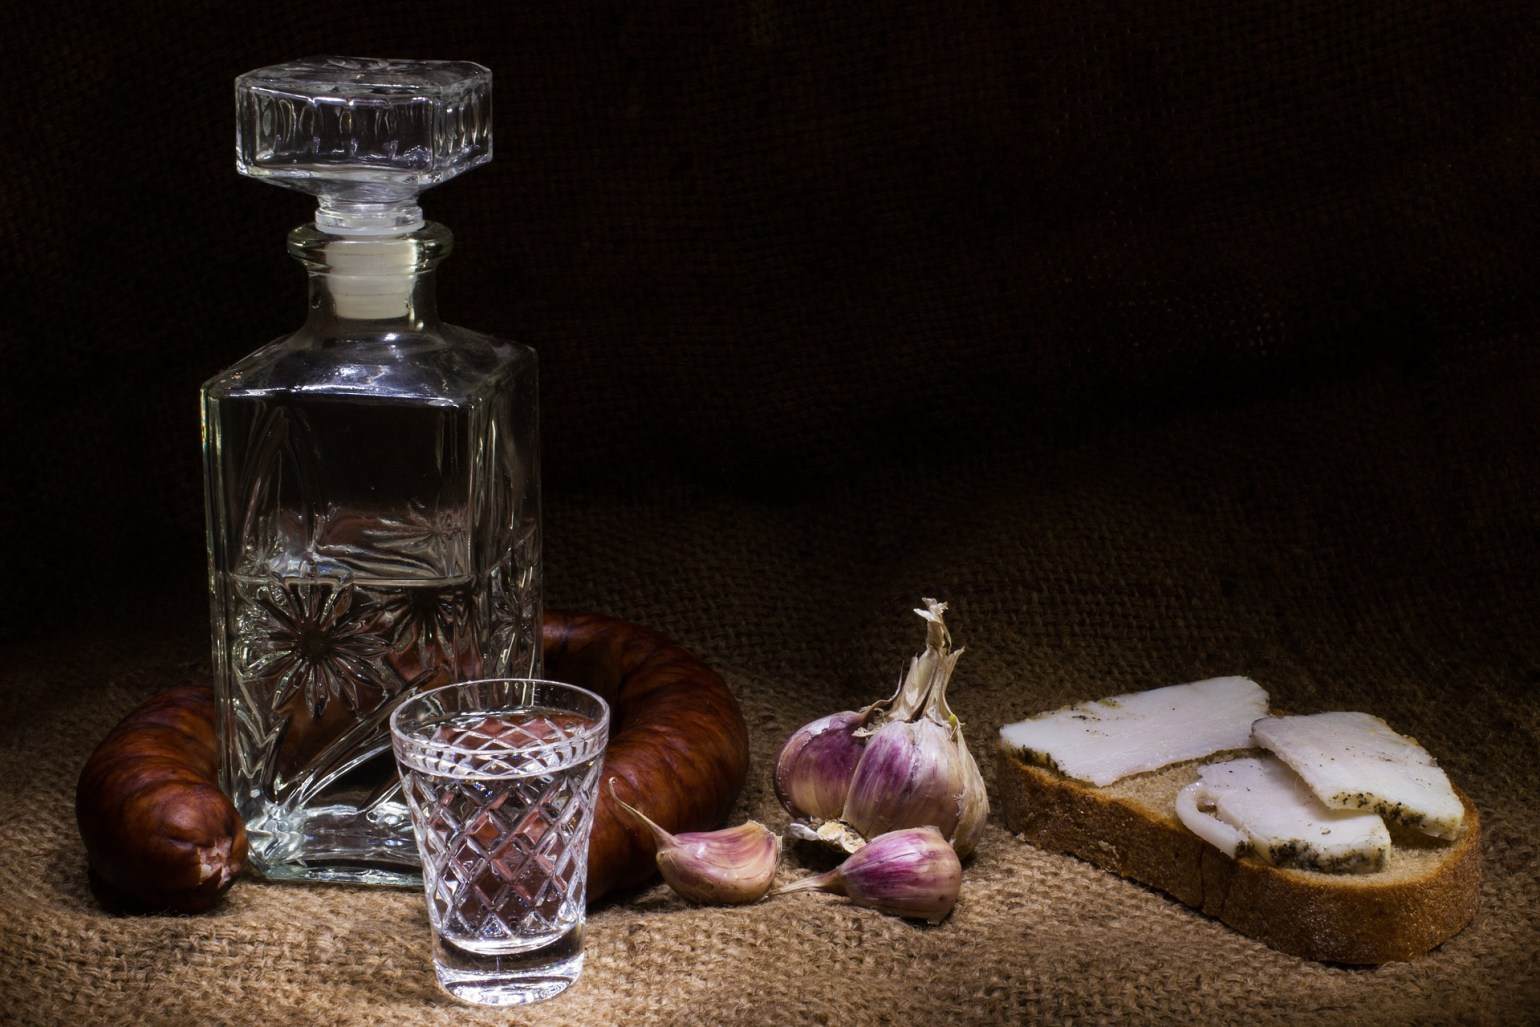 eau-de-vie traditionnelle roumaine